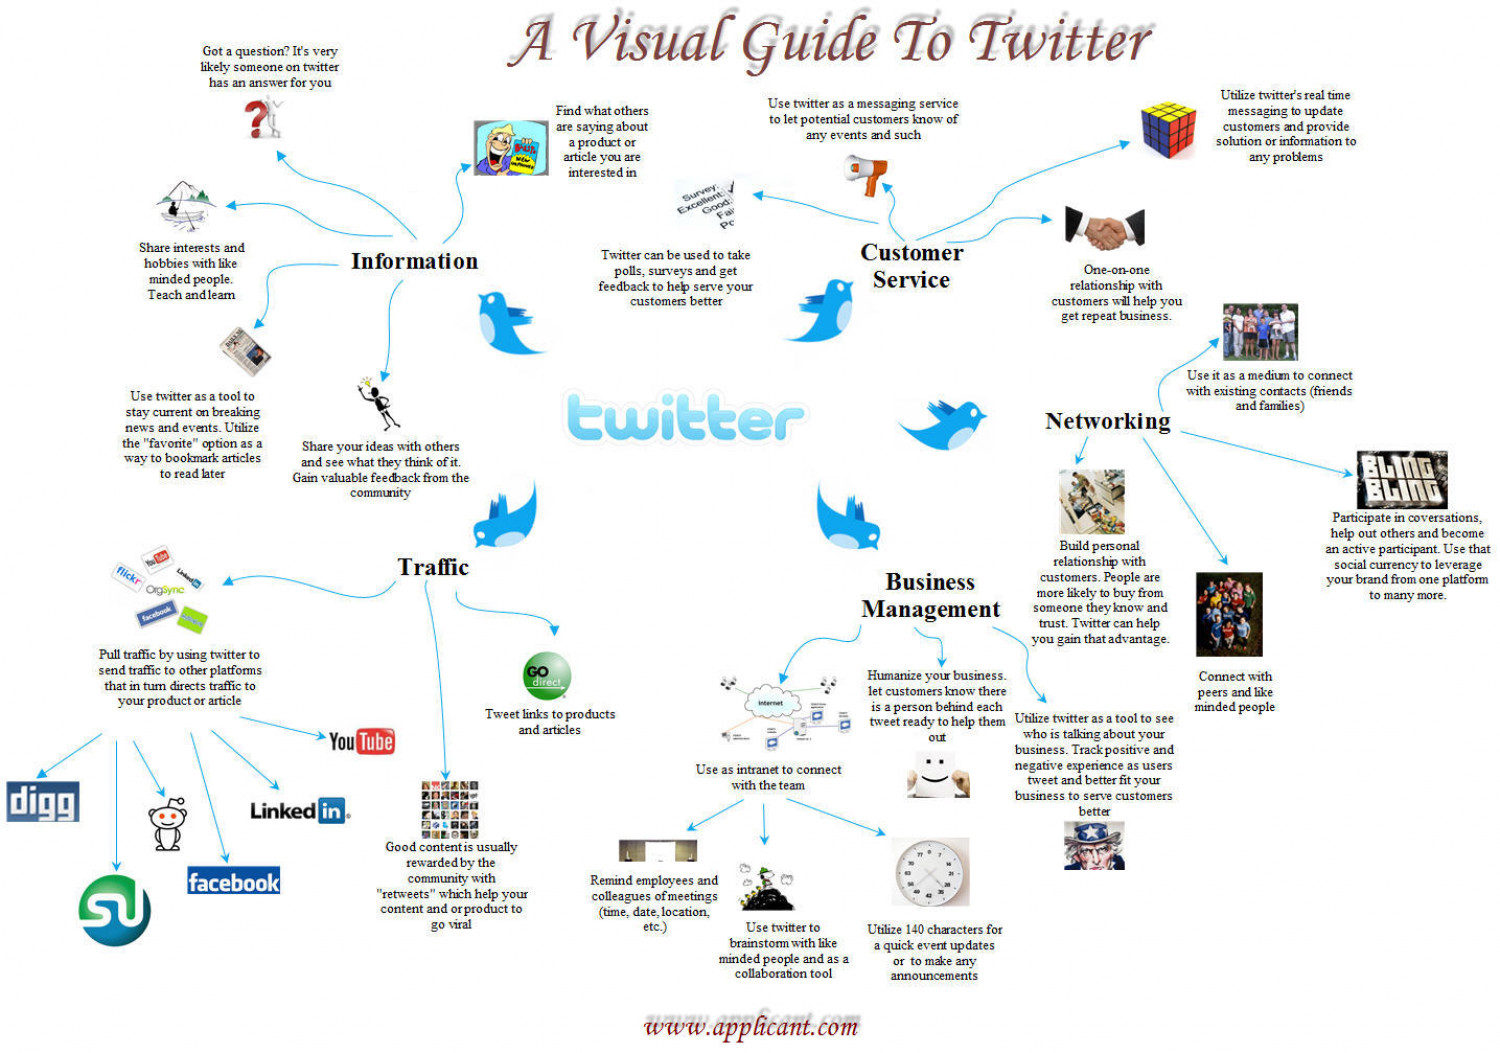 A Visual Guide to Twitter Infographic